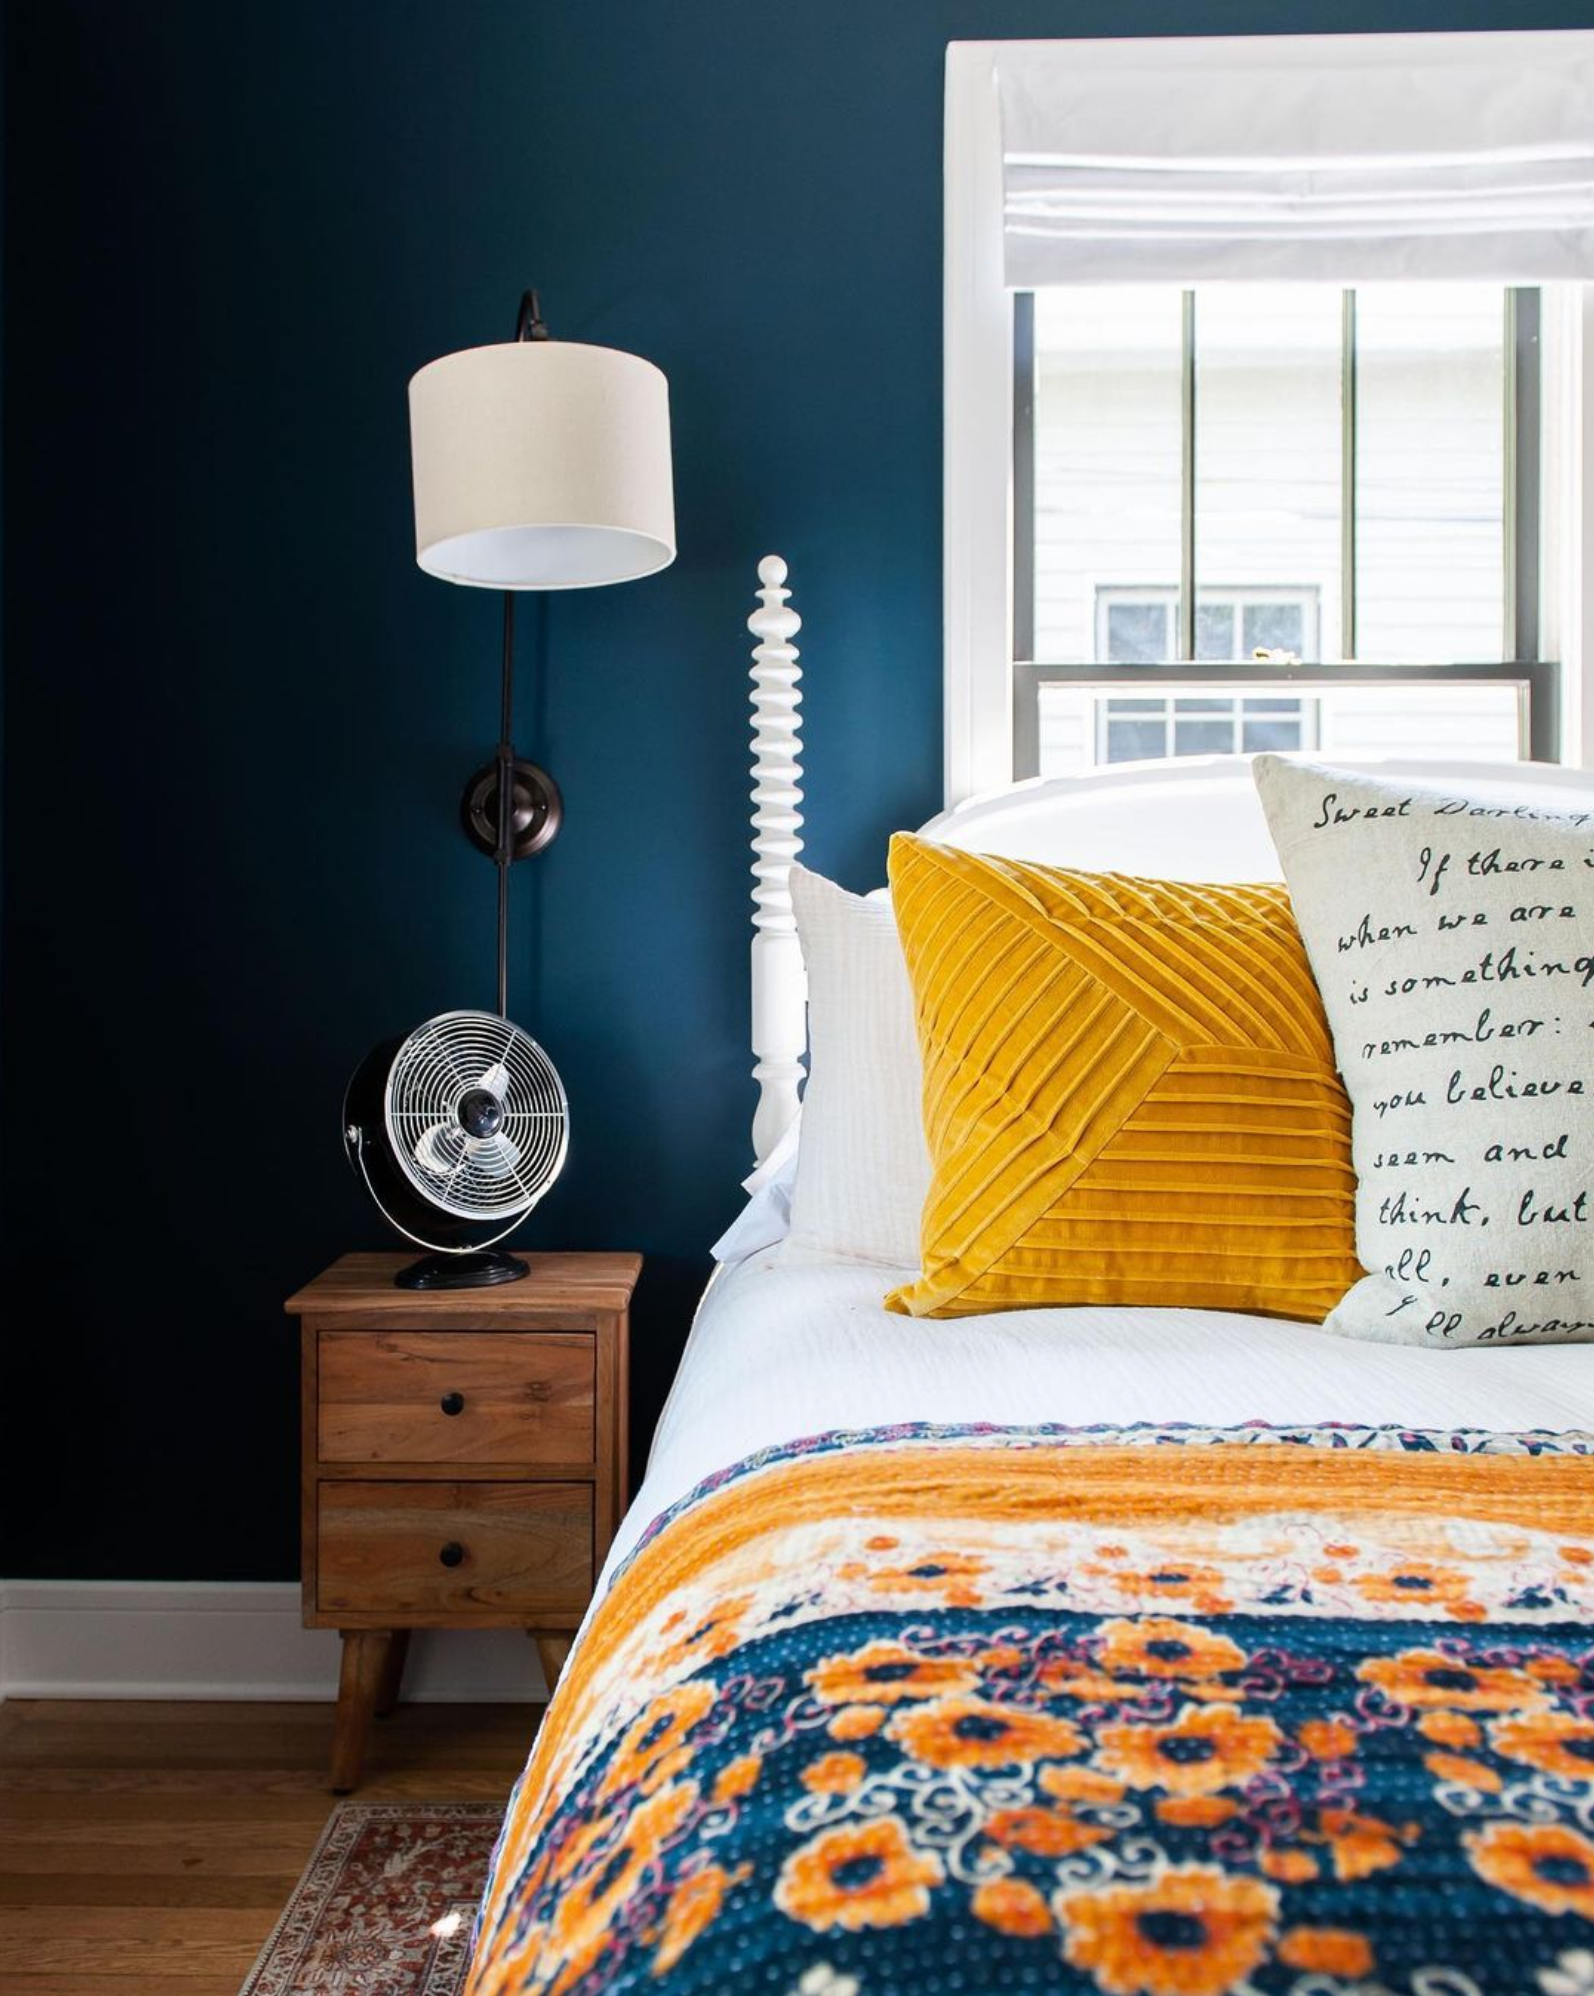 Best Navy and Mustard Bedroom Ideas - Image via Instagram @lfh_homeblend, photo by @rubyandpeachphoto, wall color by Farrow & Ball in 'Hague Blue'